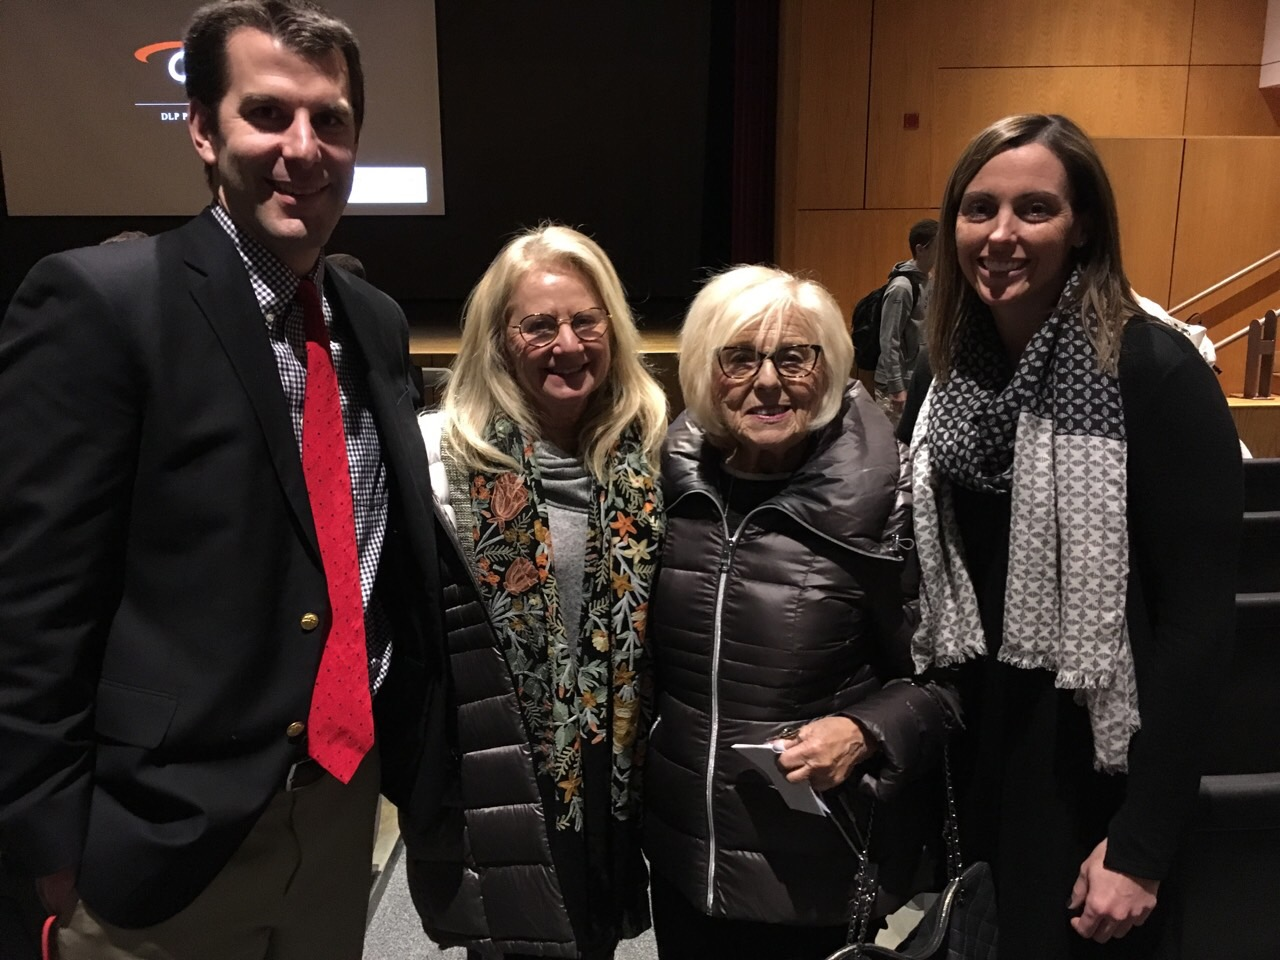 Mr. Louchheim, Judi Bohn, Janet Singer Applefield, and Mrs. McCash smiling after the moving presentation by Applefield.